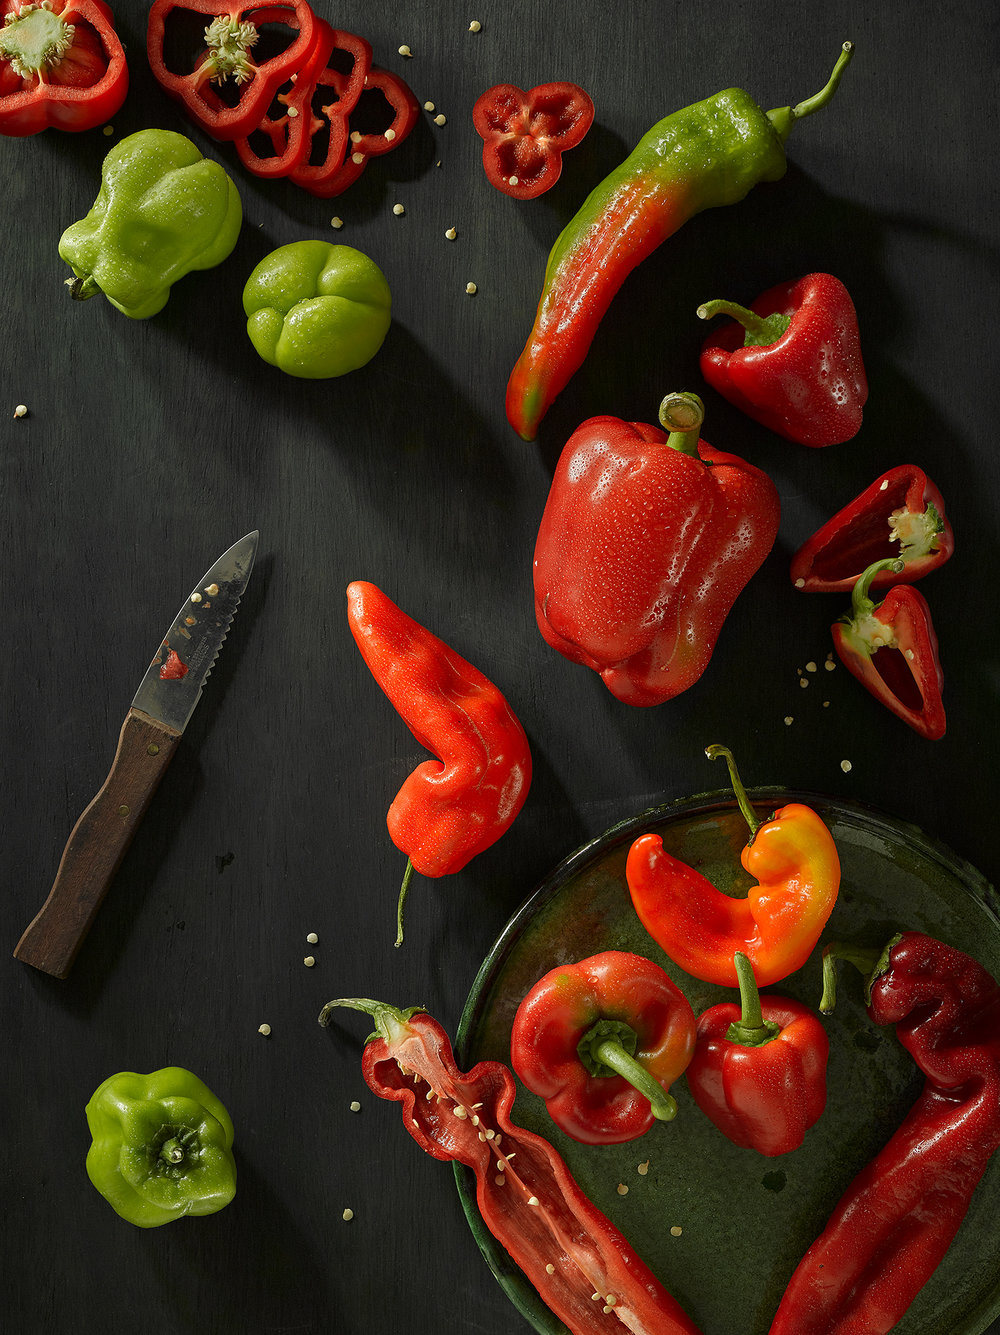 Lifestyle food photography pepper collection seed and all. Slice peppers arranged in still life composition creating adverting style food photography